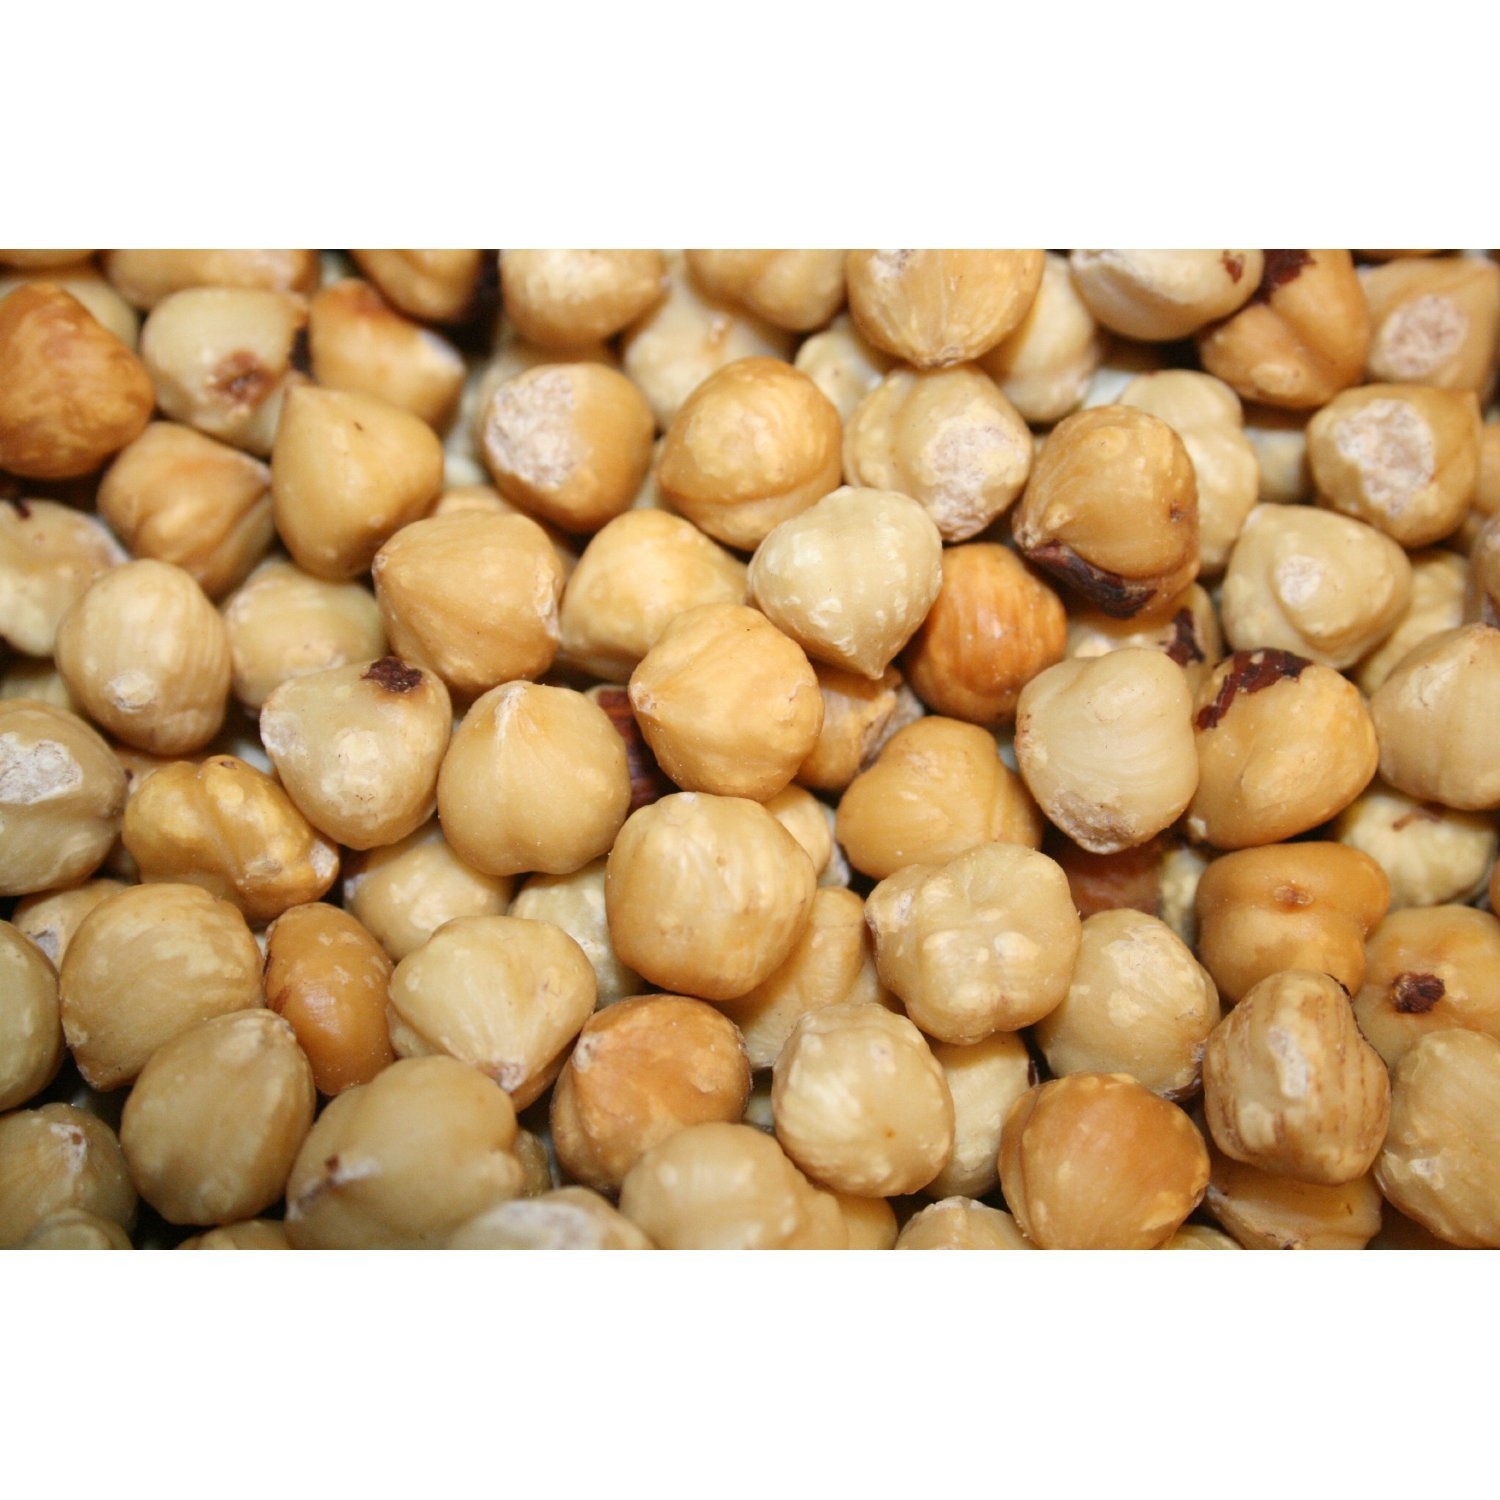 Hazelnuts Blanched Roasted Unsalted, 10Lbs